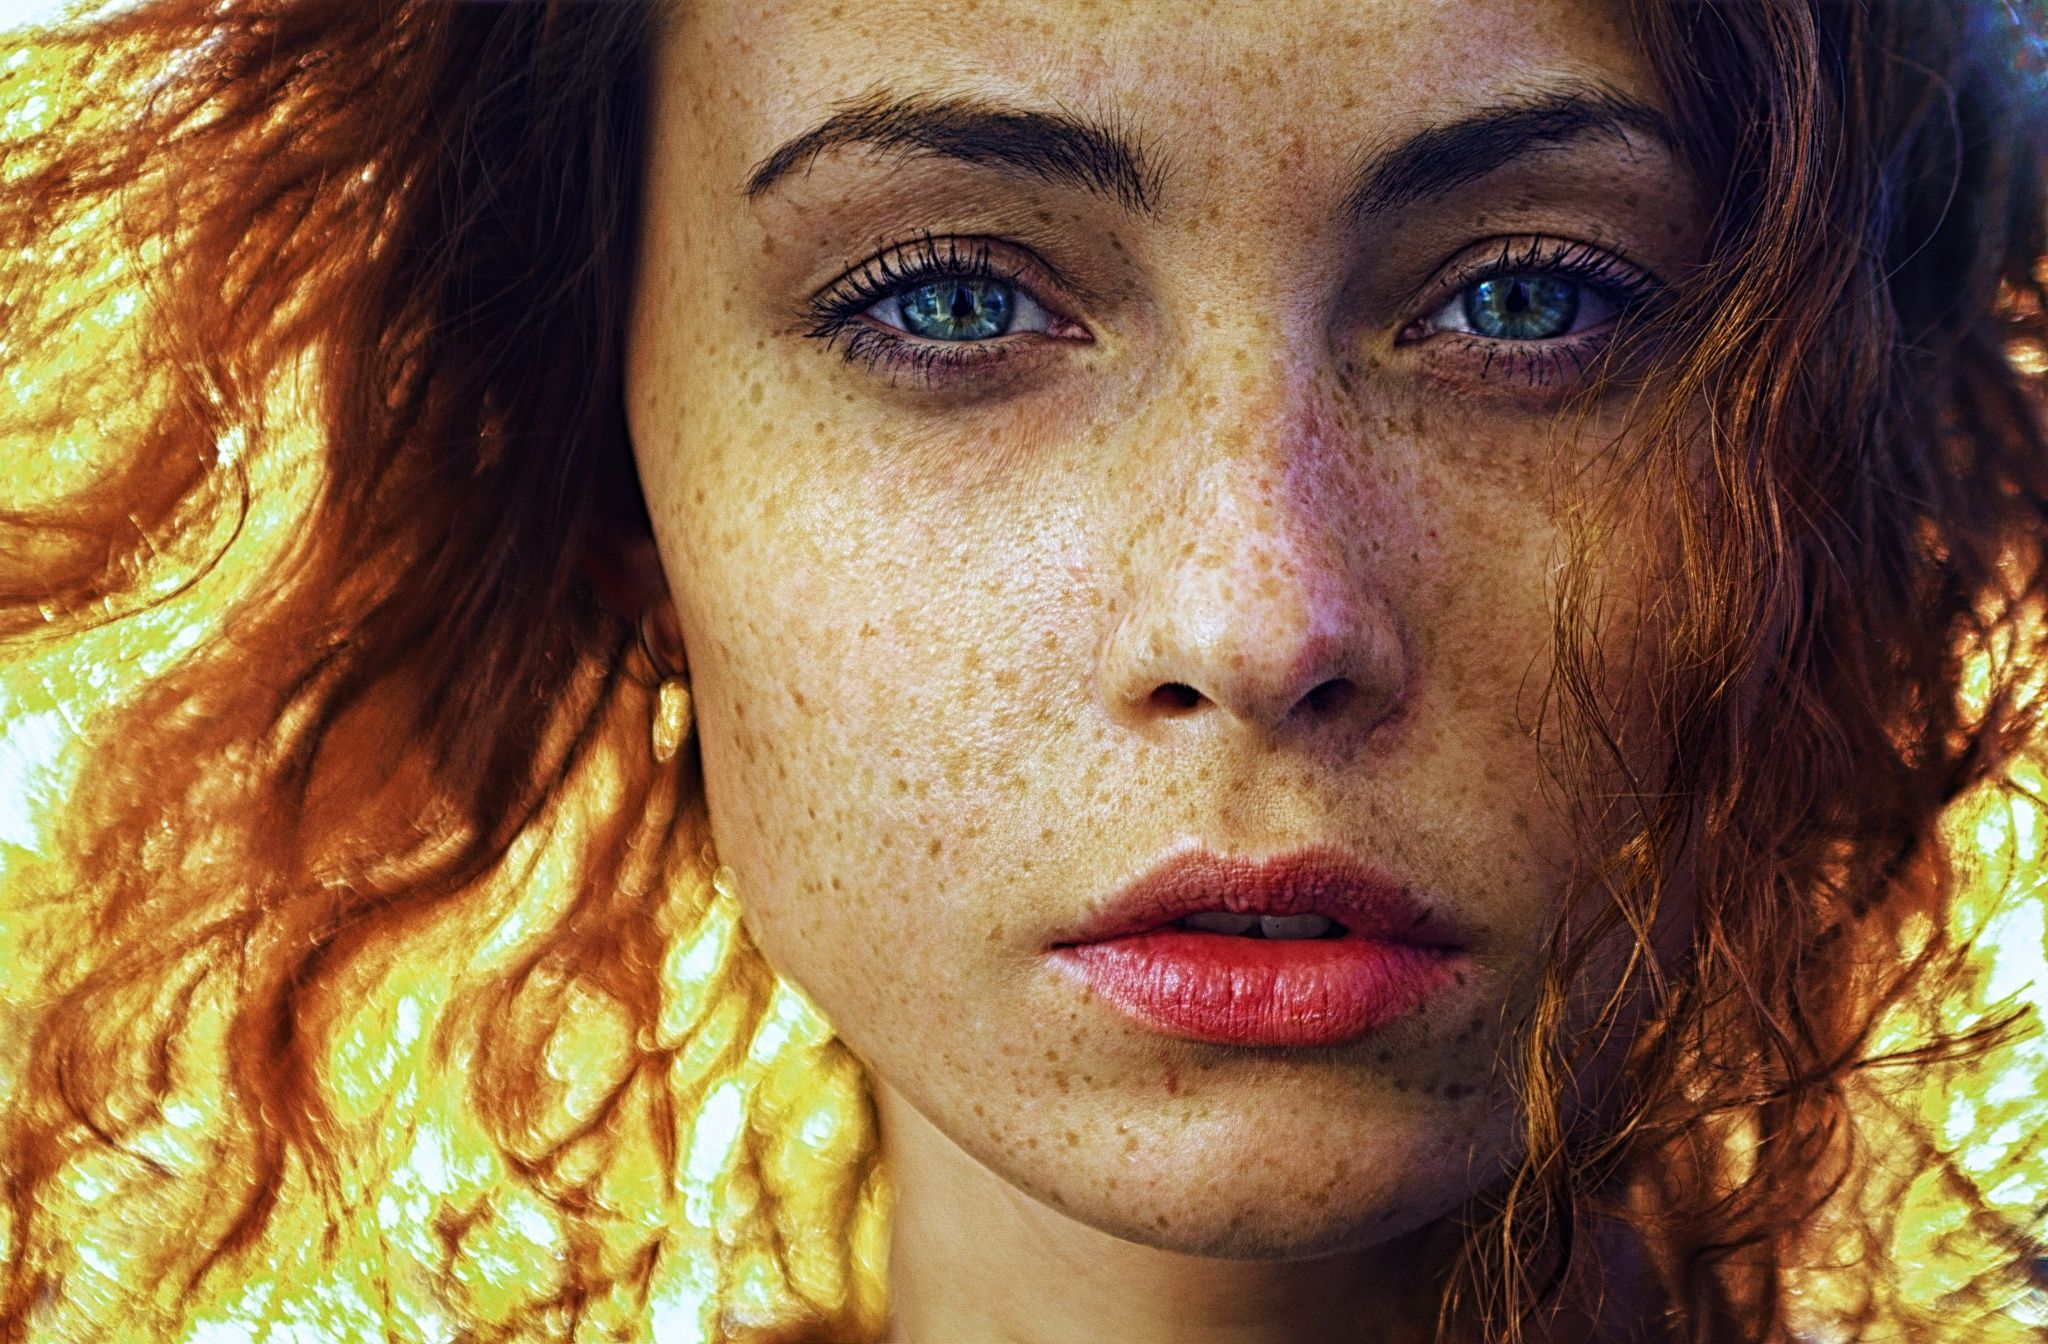 Freckles By Darya Chacheva On 500px Girl With Curly Hair